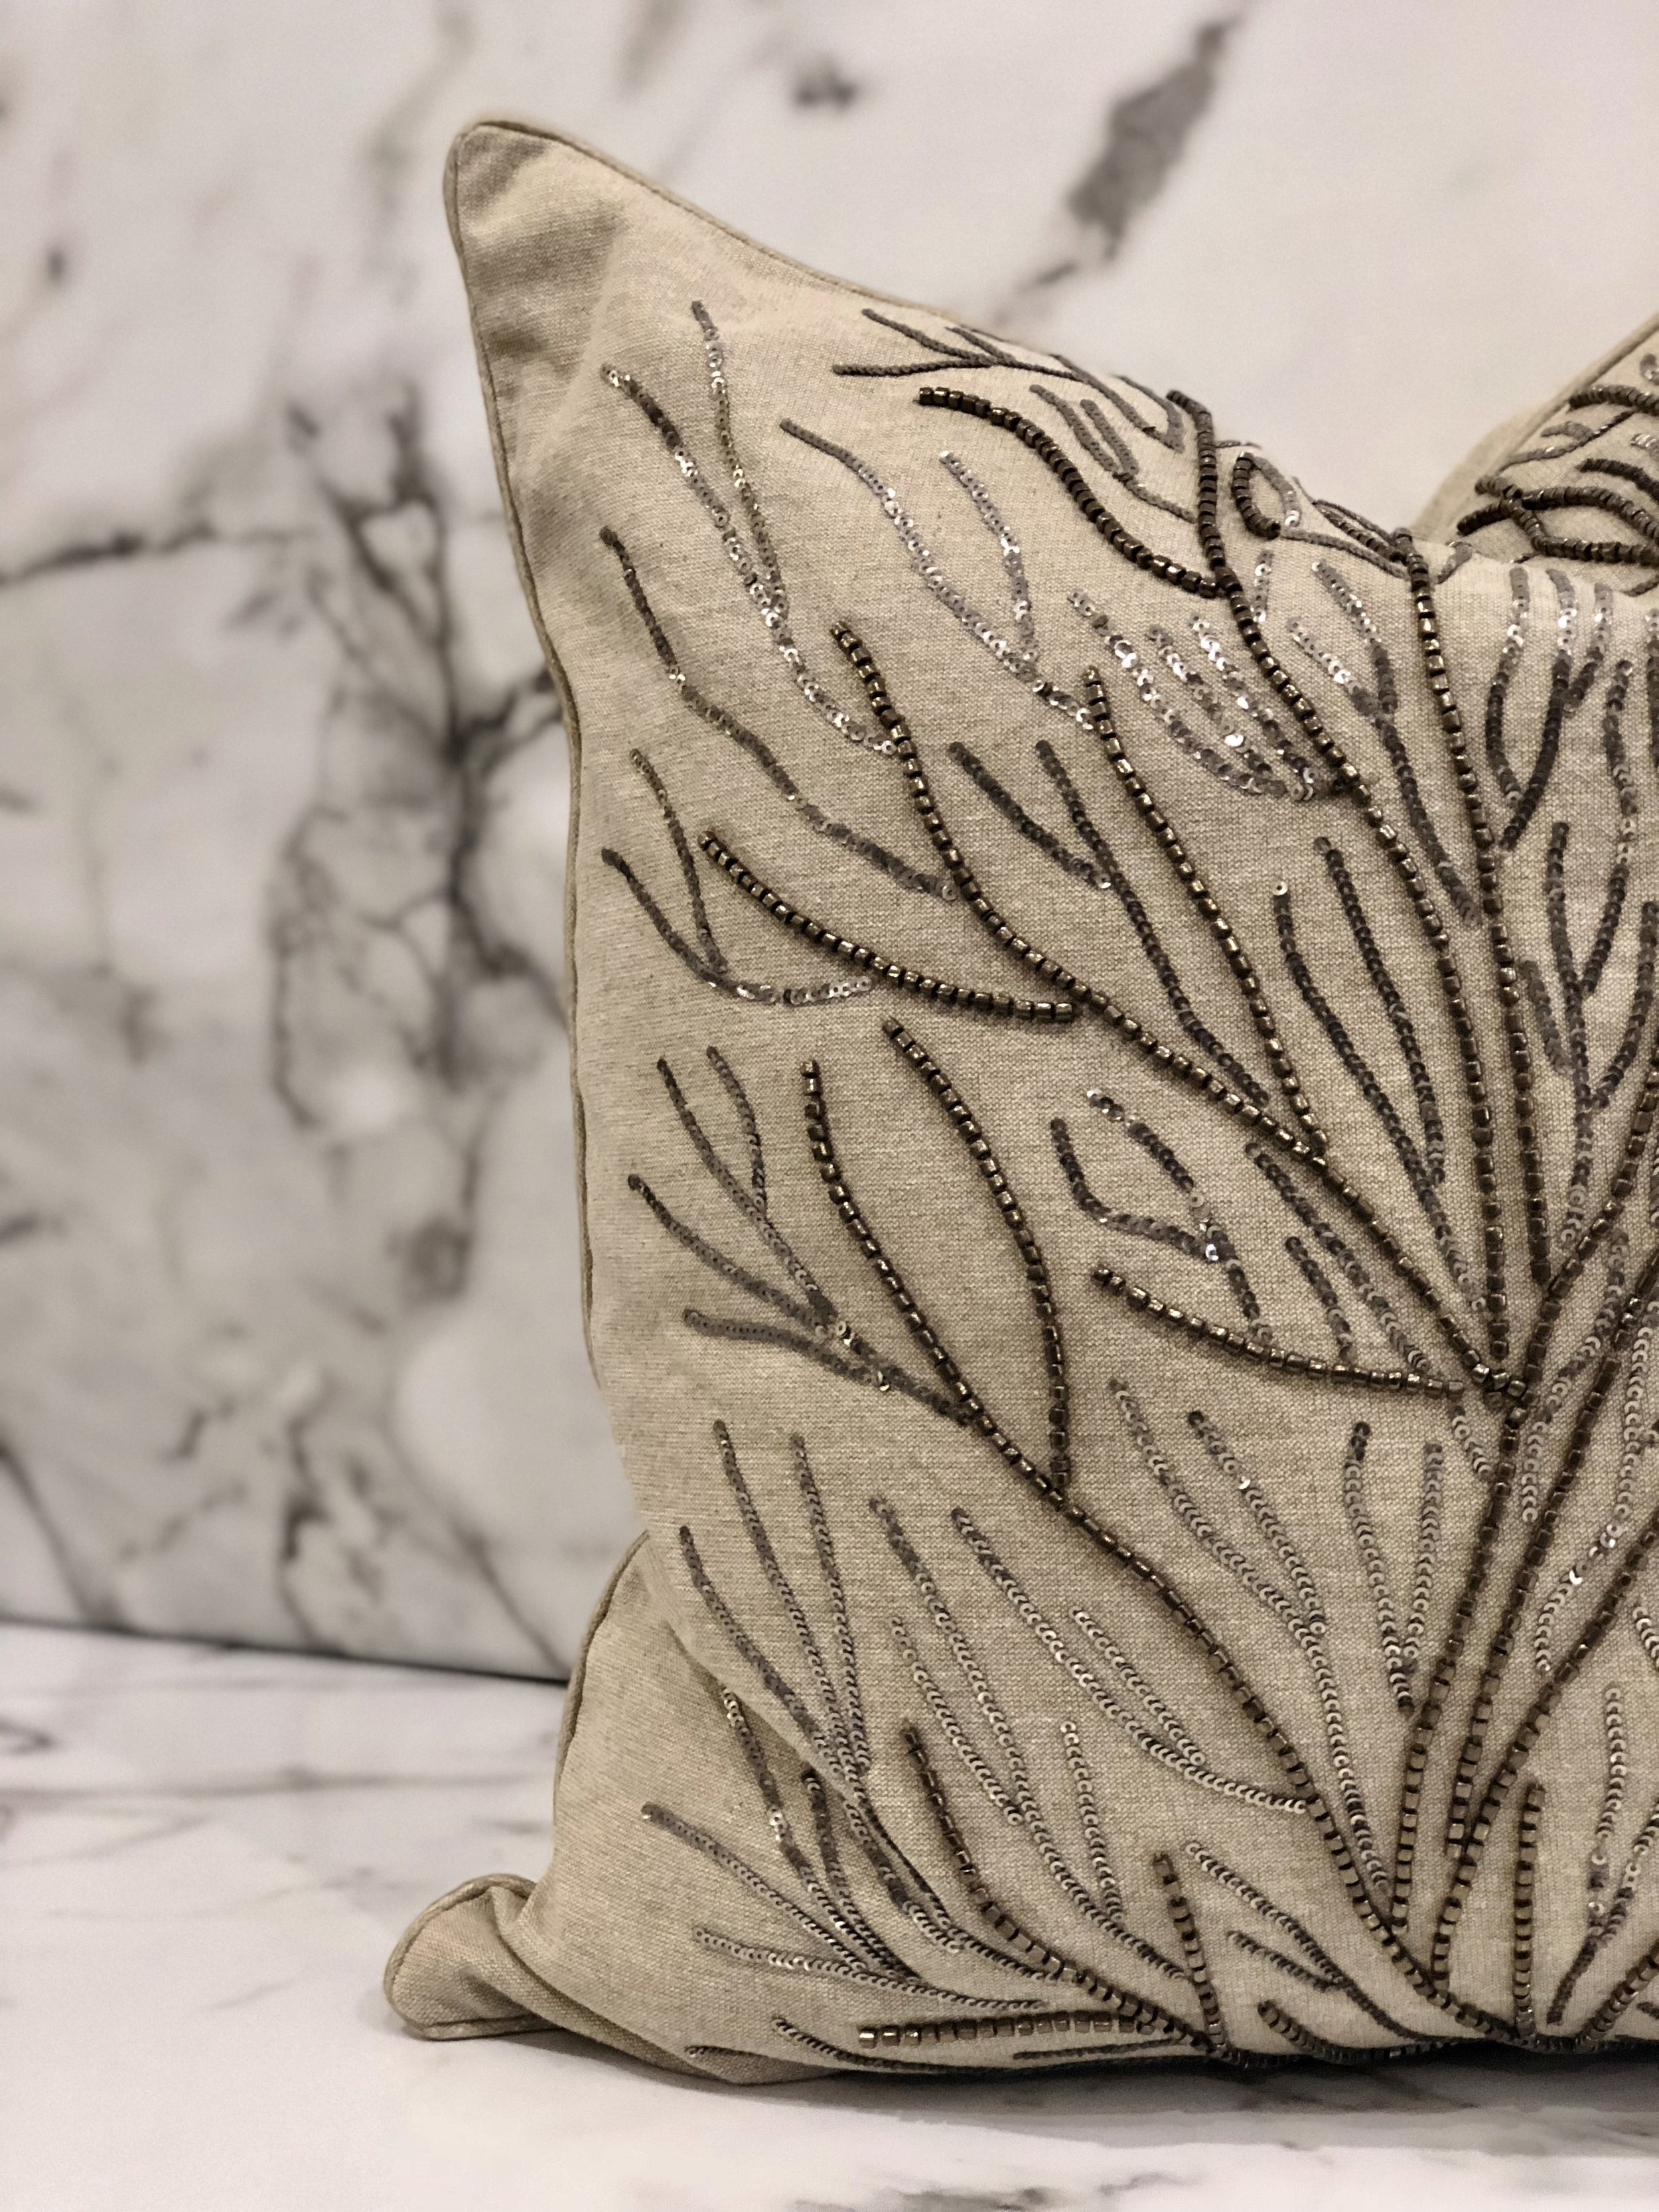 Beading - Beading is a simple way to add beauty and sparkle to any space. The delicate touch needed for a beaded product is proof of the quality and high end materials. Any beaded piece is sure to wow your guests.Pillow - $147.95